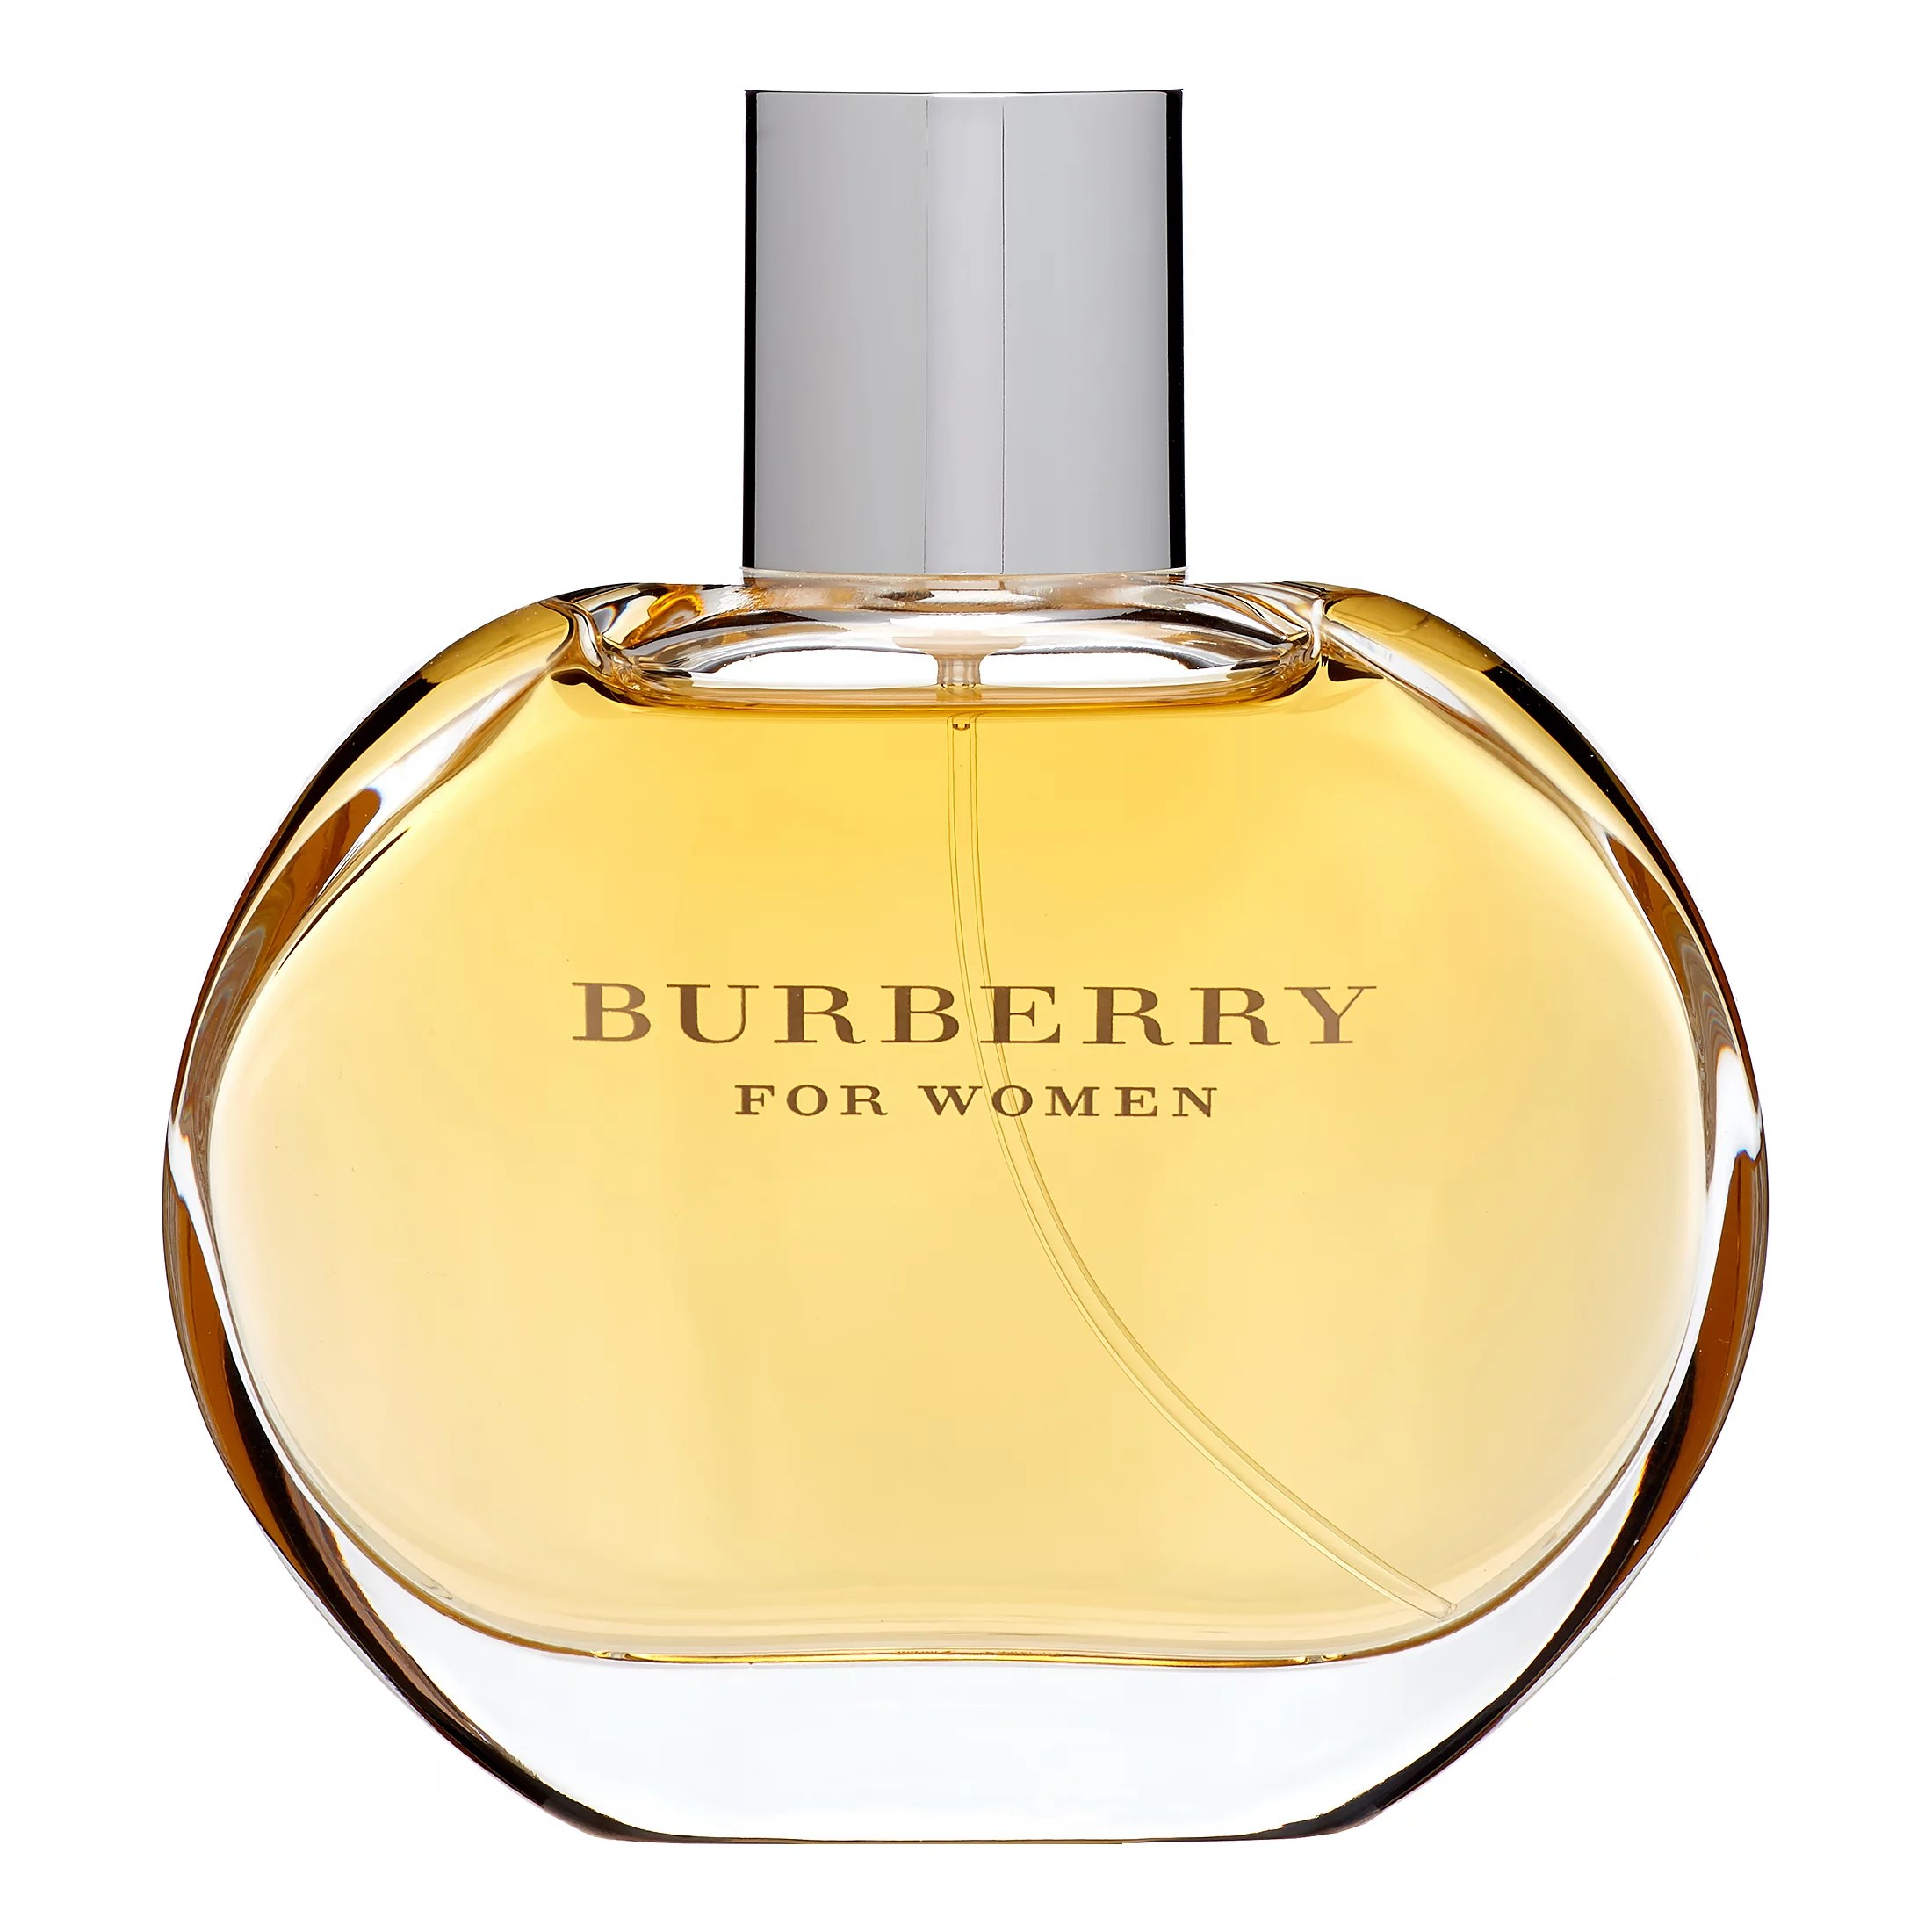 ( Value) Burberry Classic Eau De Parfum Spray, Perfume For Women, 3.3 Oz